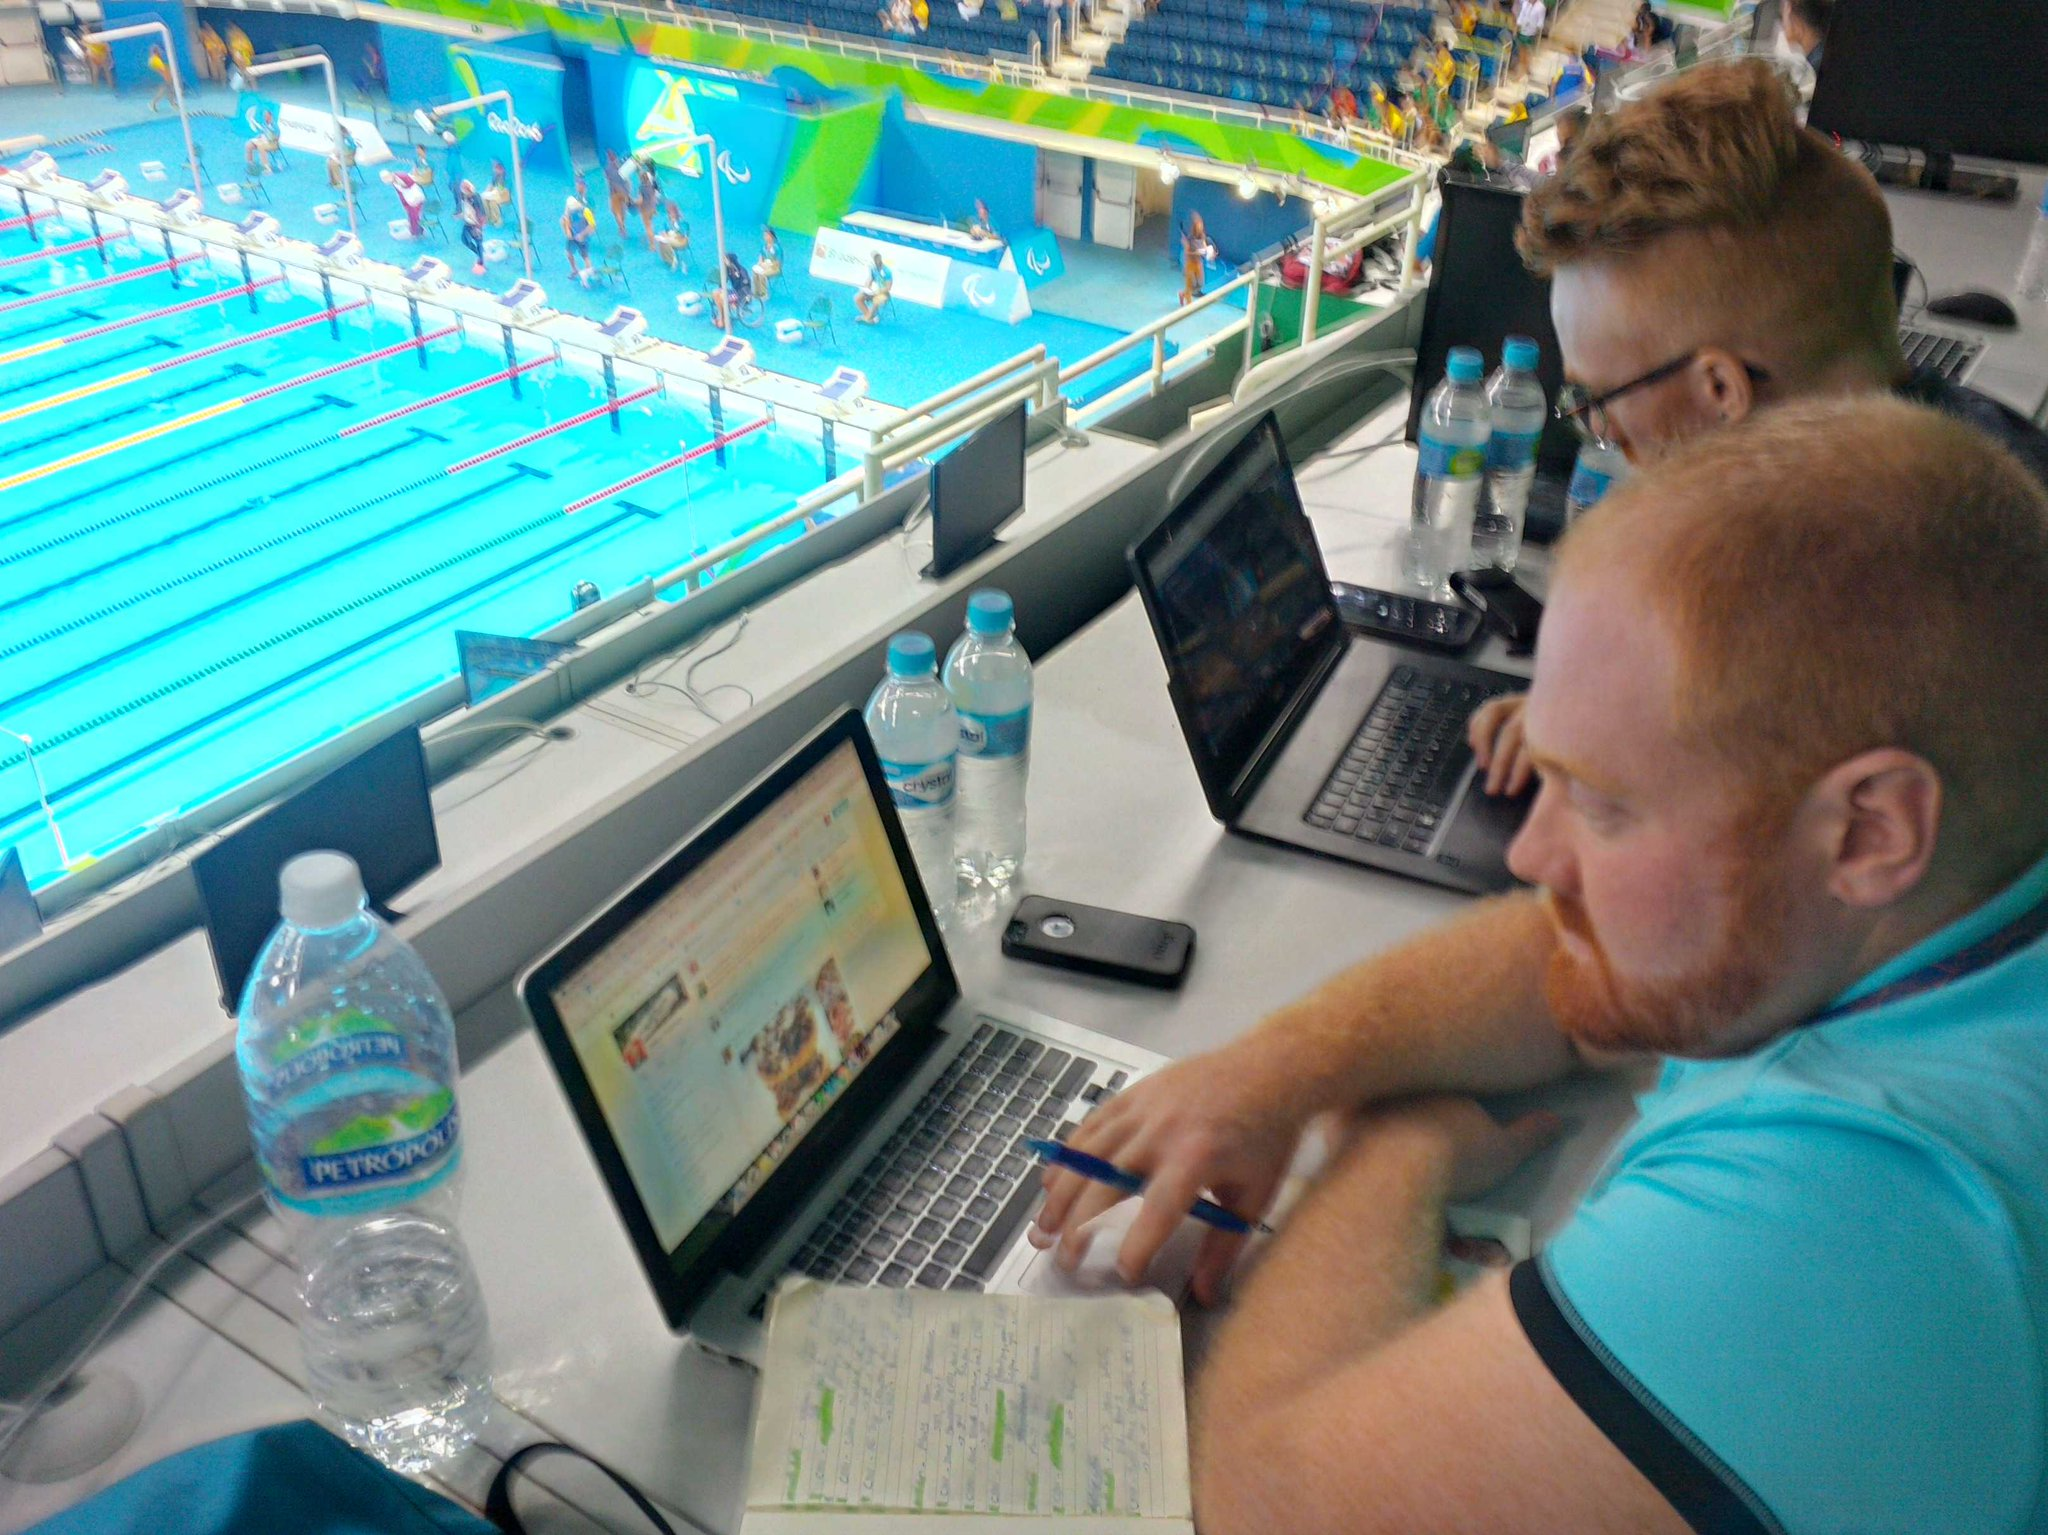 Our @c_fergs and @keep_score cover swimming @paralympics #parabrazil16 @sportsjschool https://t.co/VhLjW1eDNc